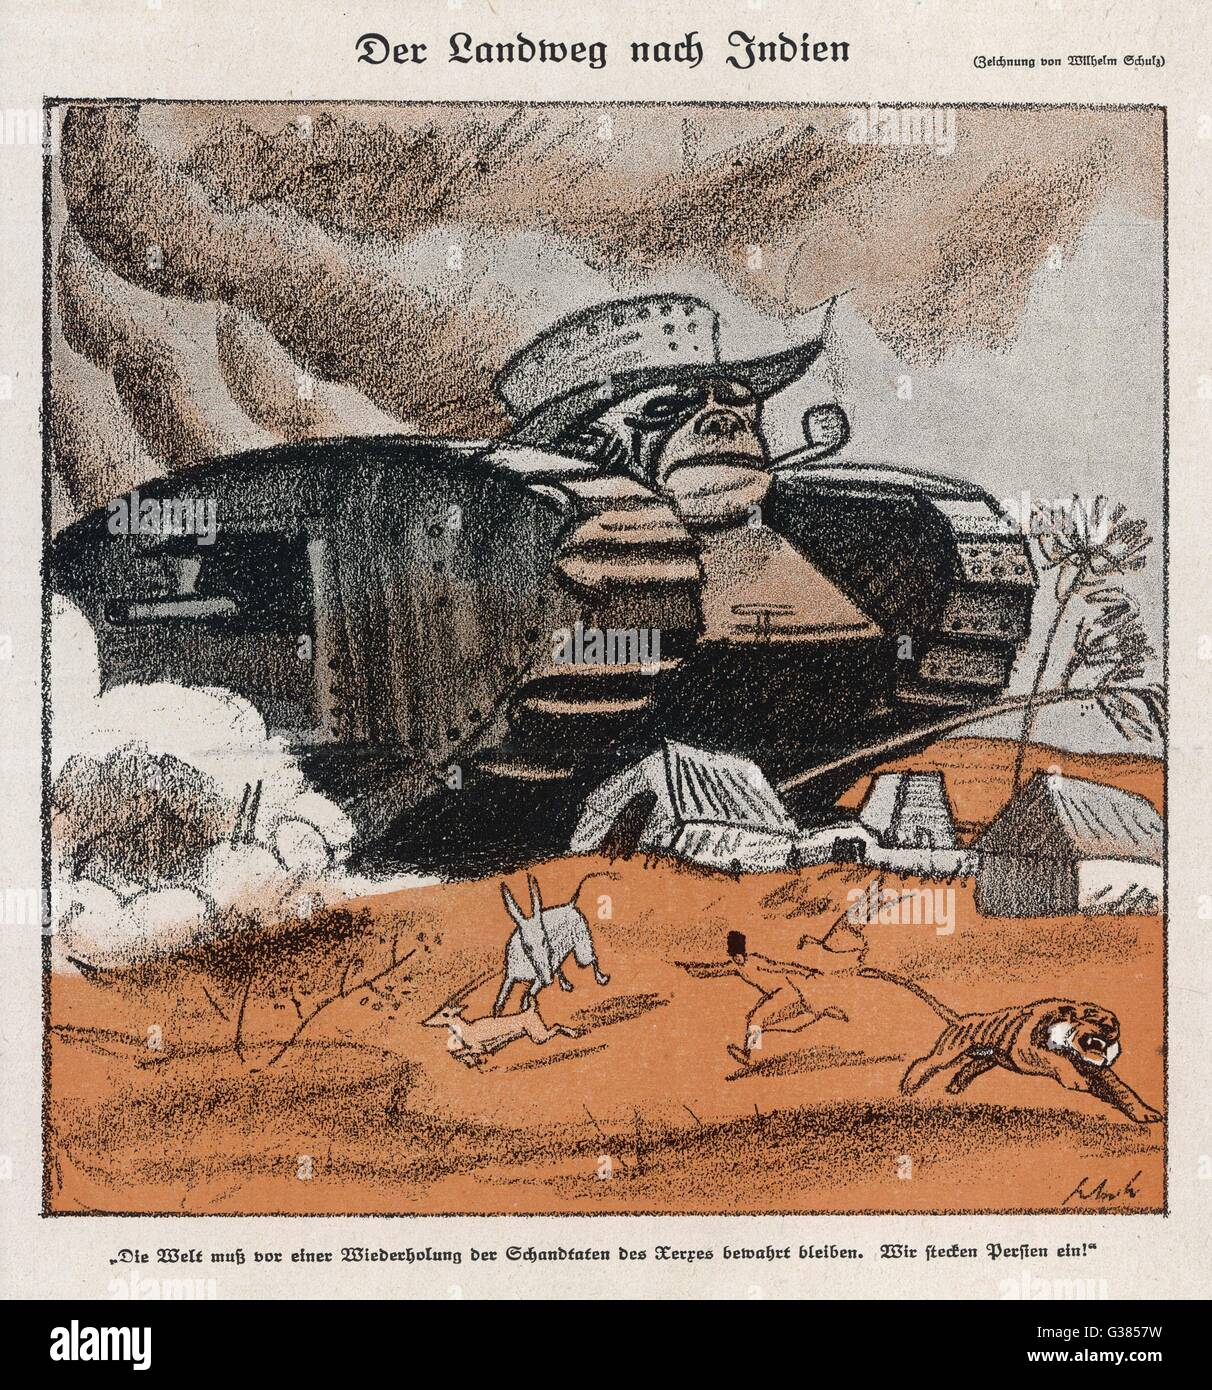 John Bull's tanks impose  British imperialism on India         Date: 1919 - Stock Image